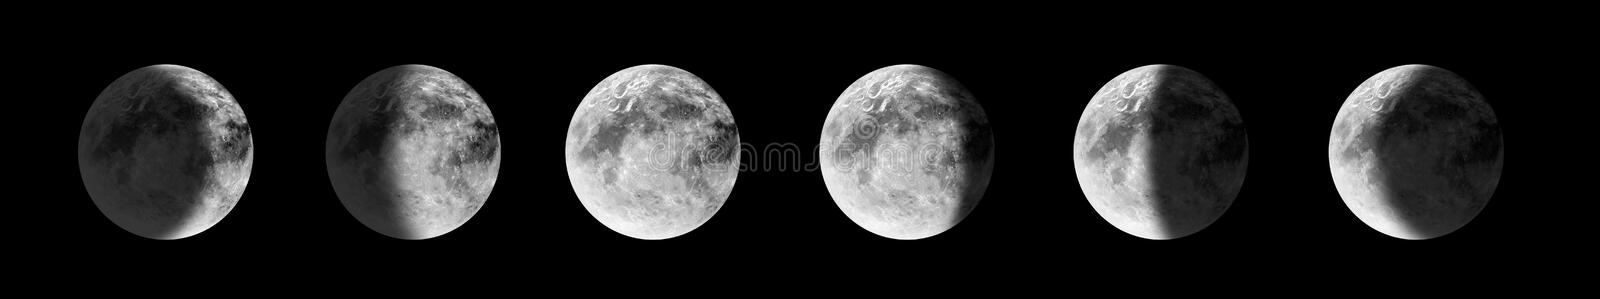 Moon phases stock illustration